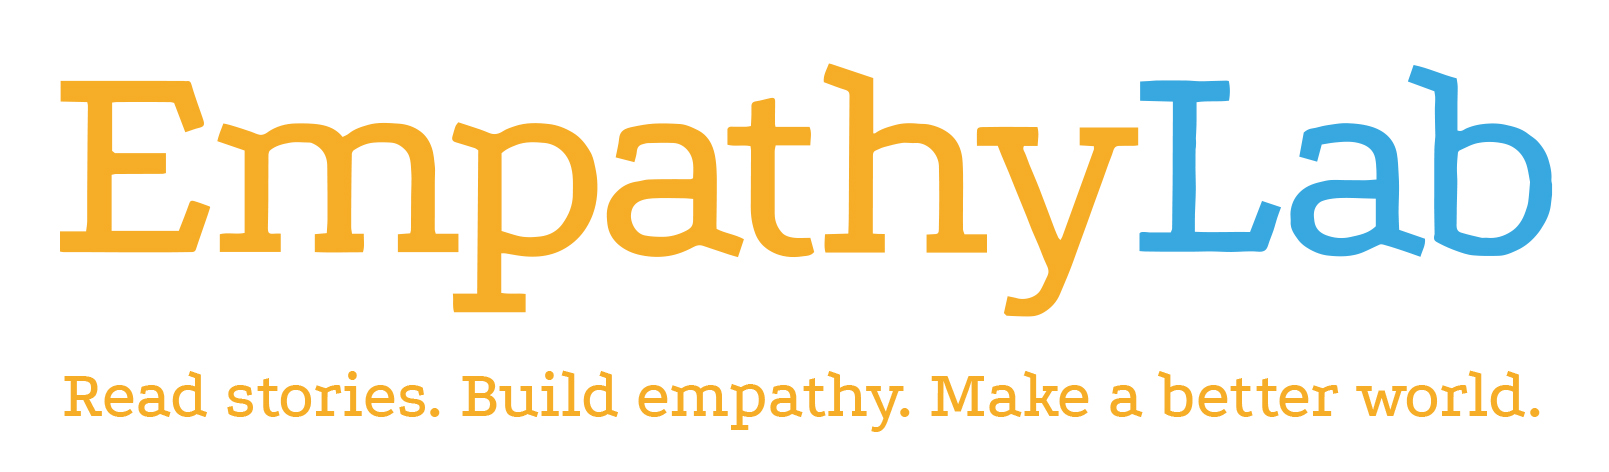 Primary Read for Empathy mini collection 2021